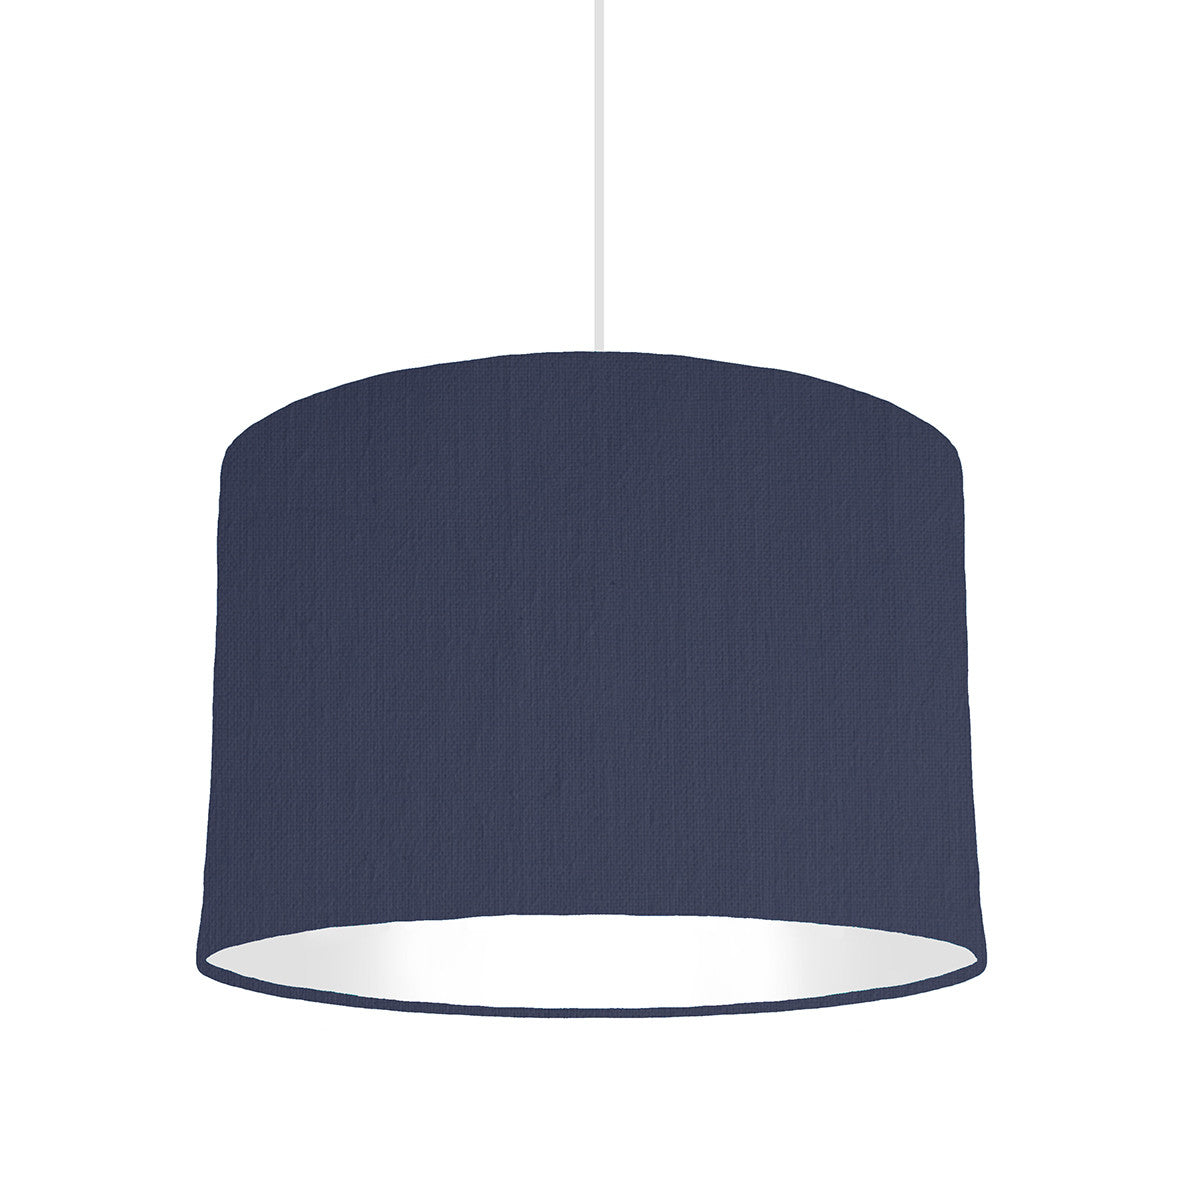 Navy Blue Lampshade With White Lining, 30cm wide